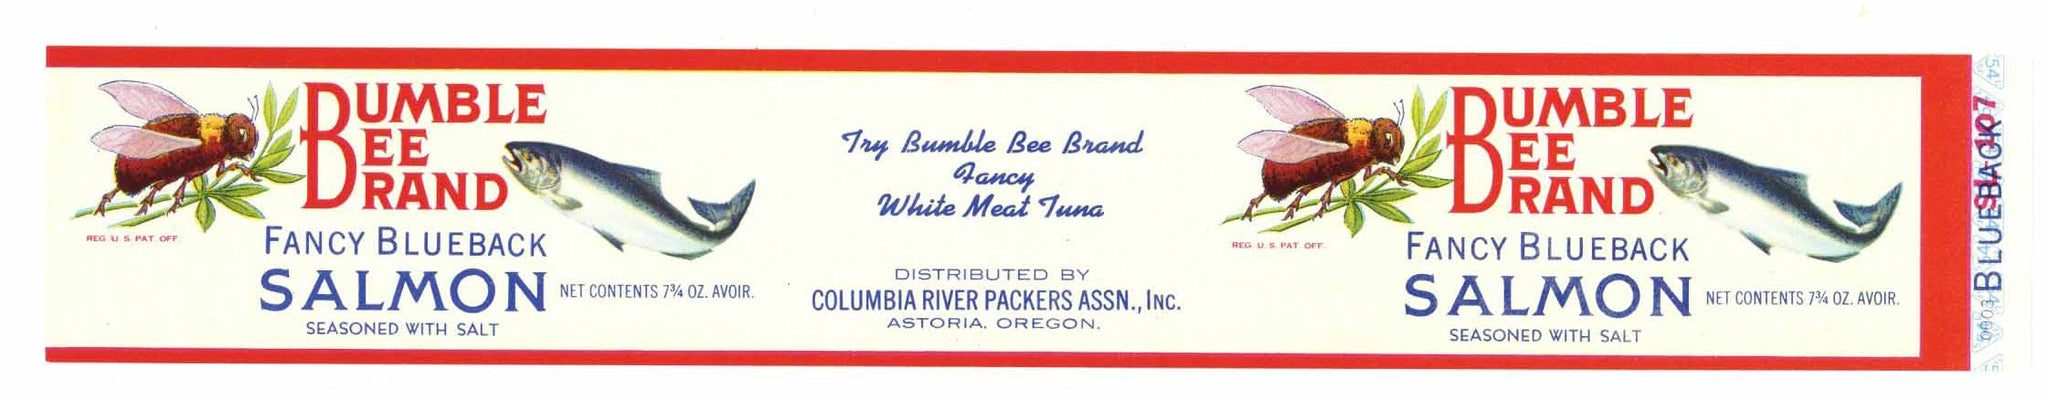 Bumble Bee Brand Vintage Astoria Oregon Salmon Can Label